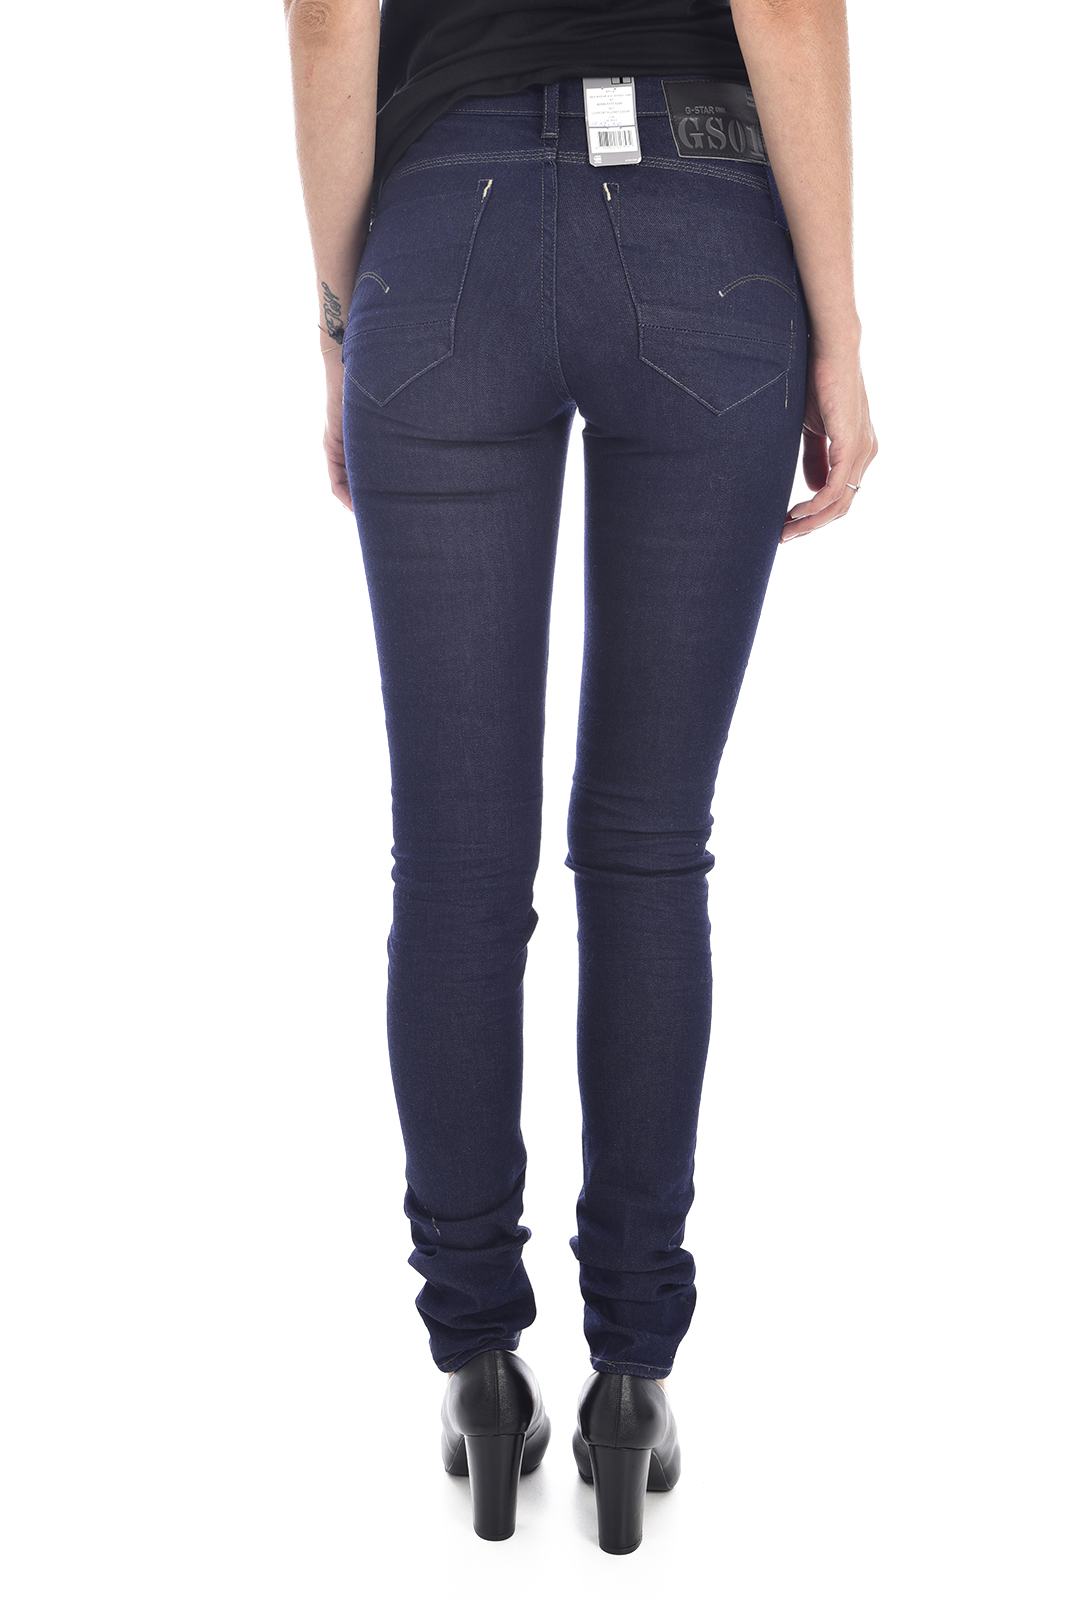 Jeans   G-star 60599-5173-1241 new radar bleu